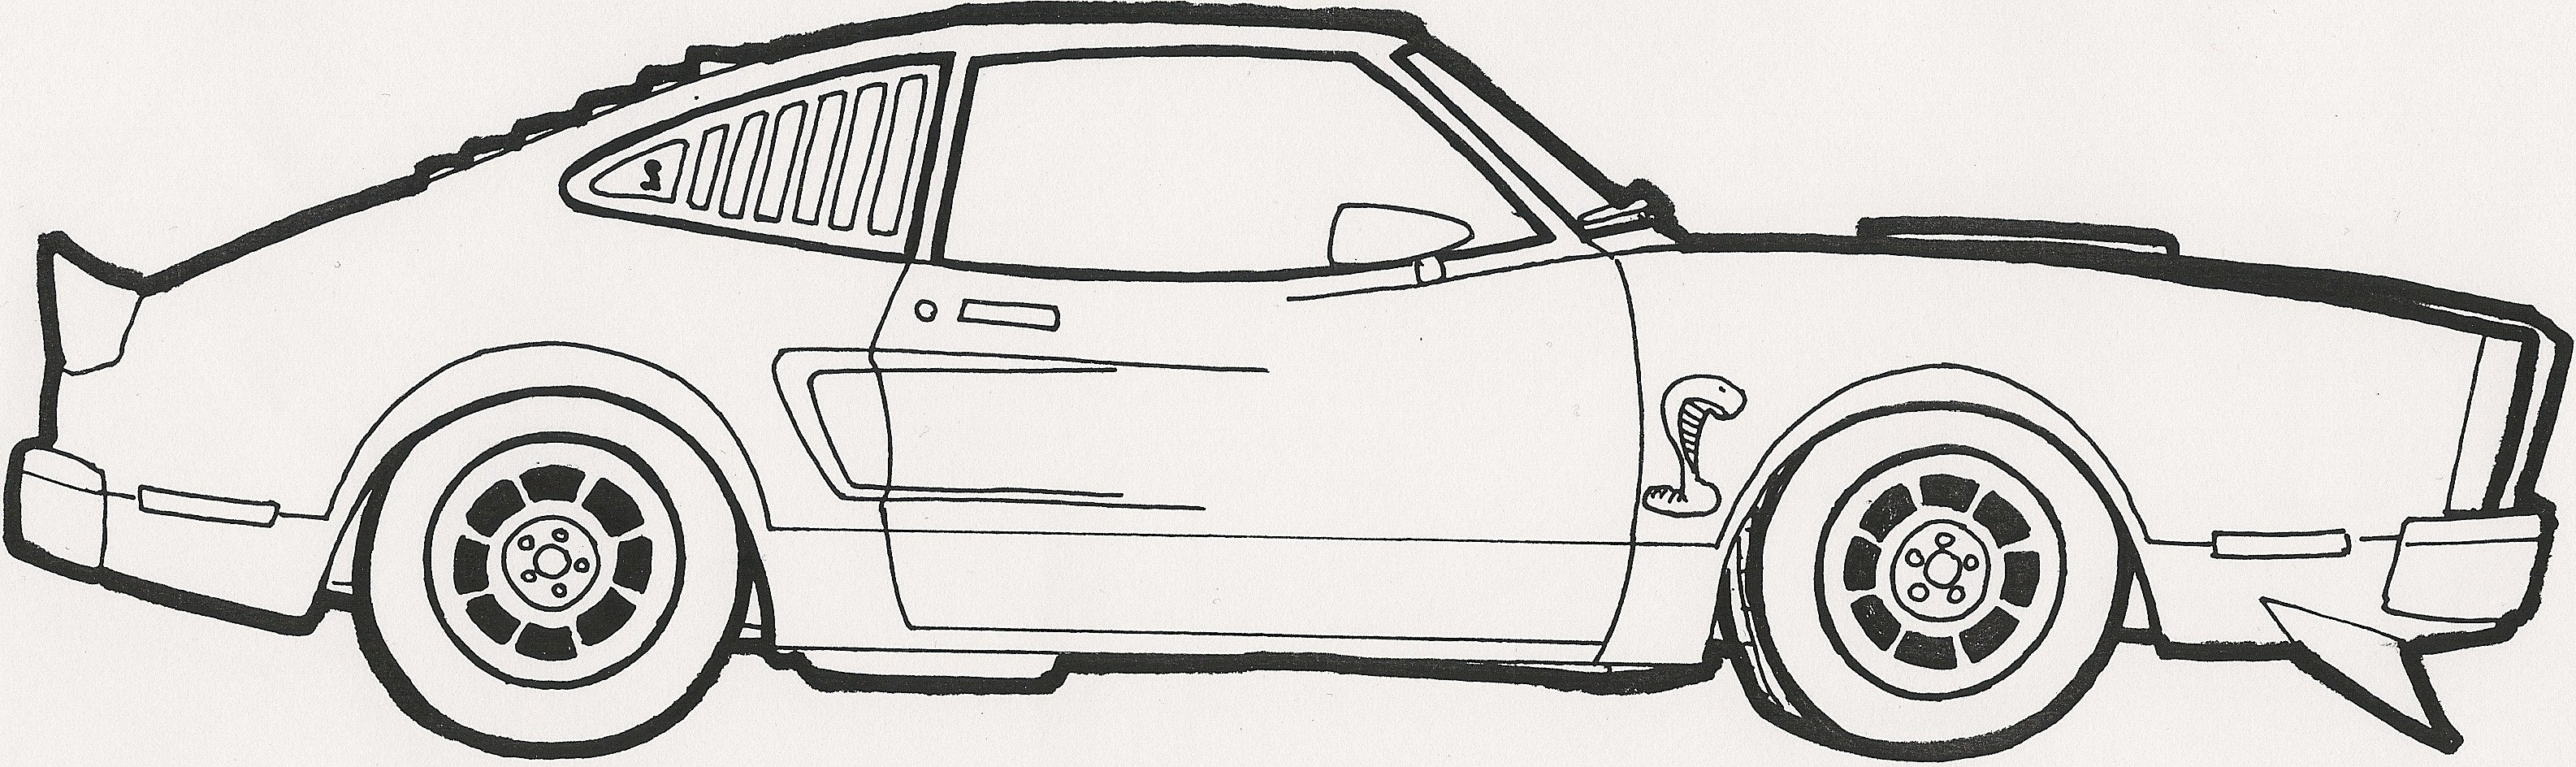 Super Car ford Mustang Coloring Page Inspirational Mustang Coloring to Print Of Super Car ford Mustang Coloring Page Inspirational Mustang Download Printable